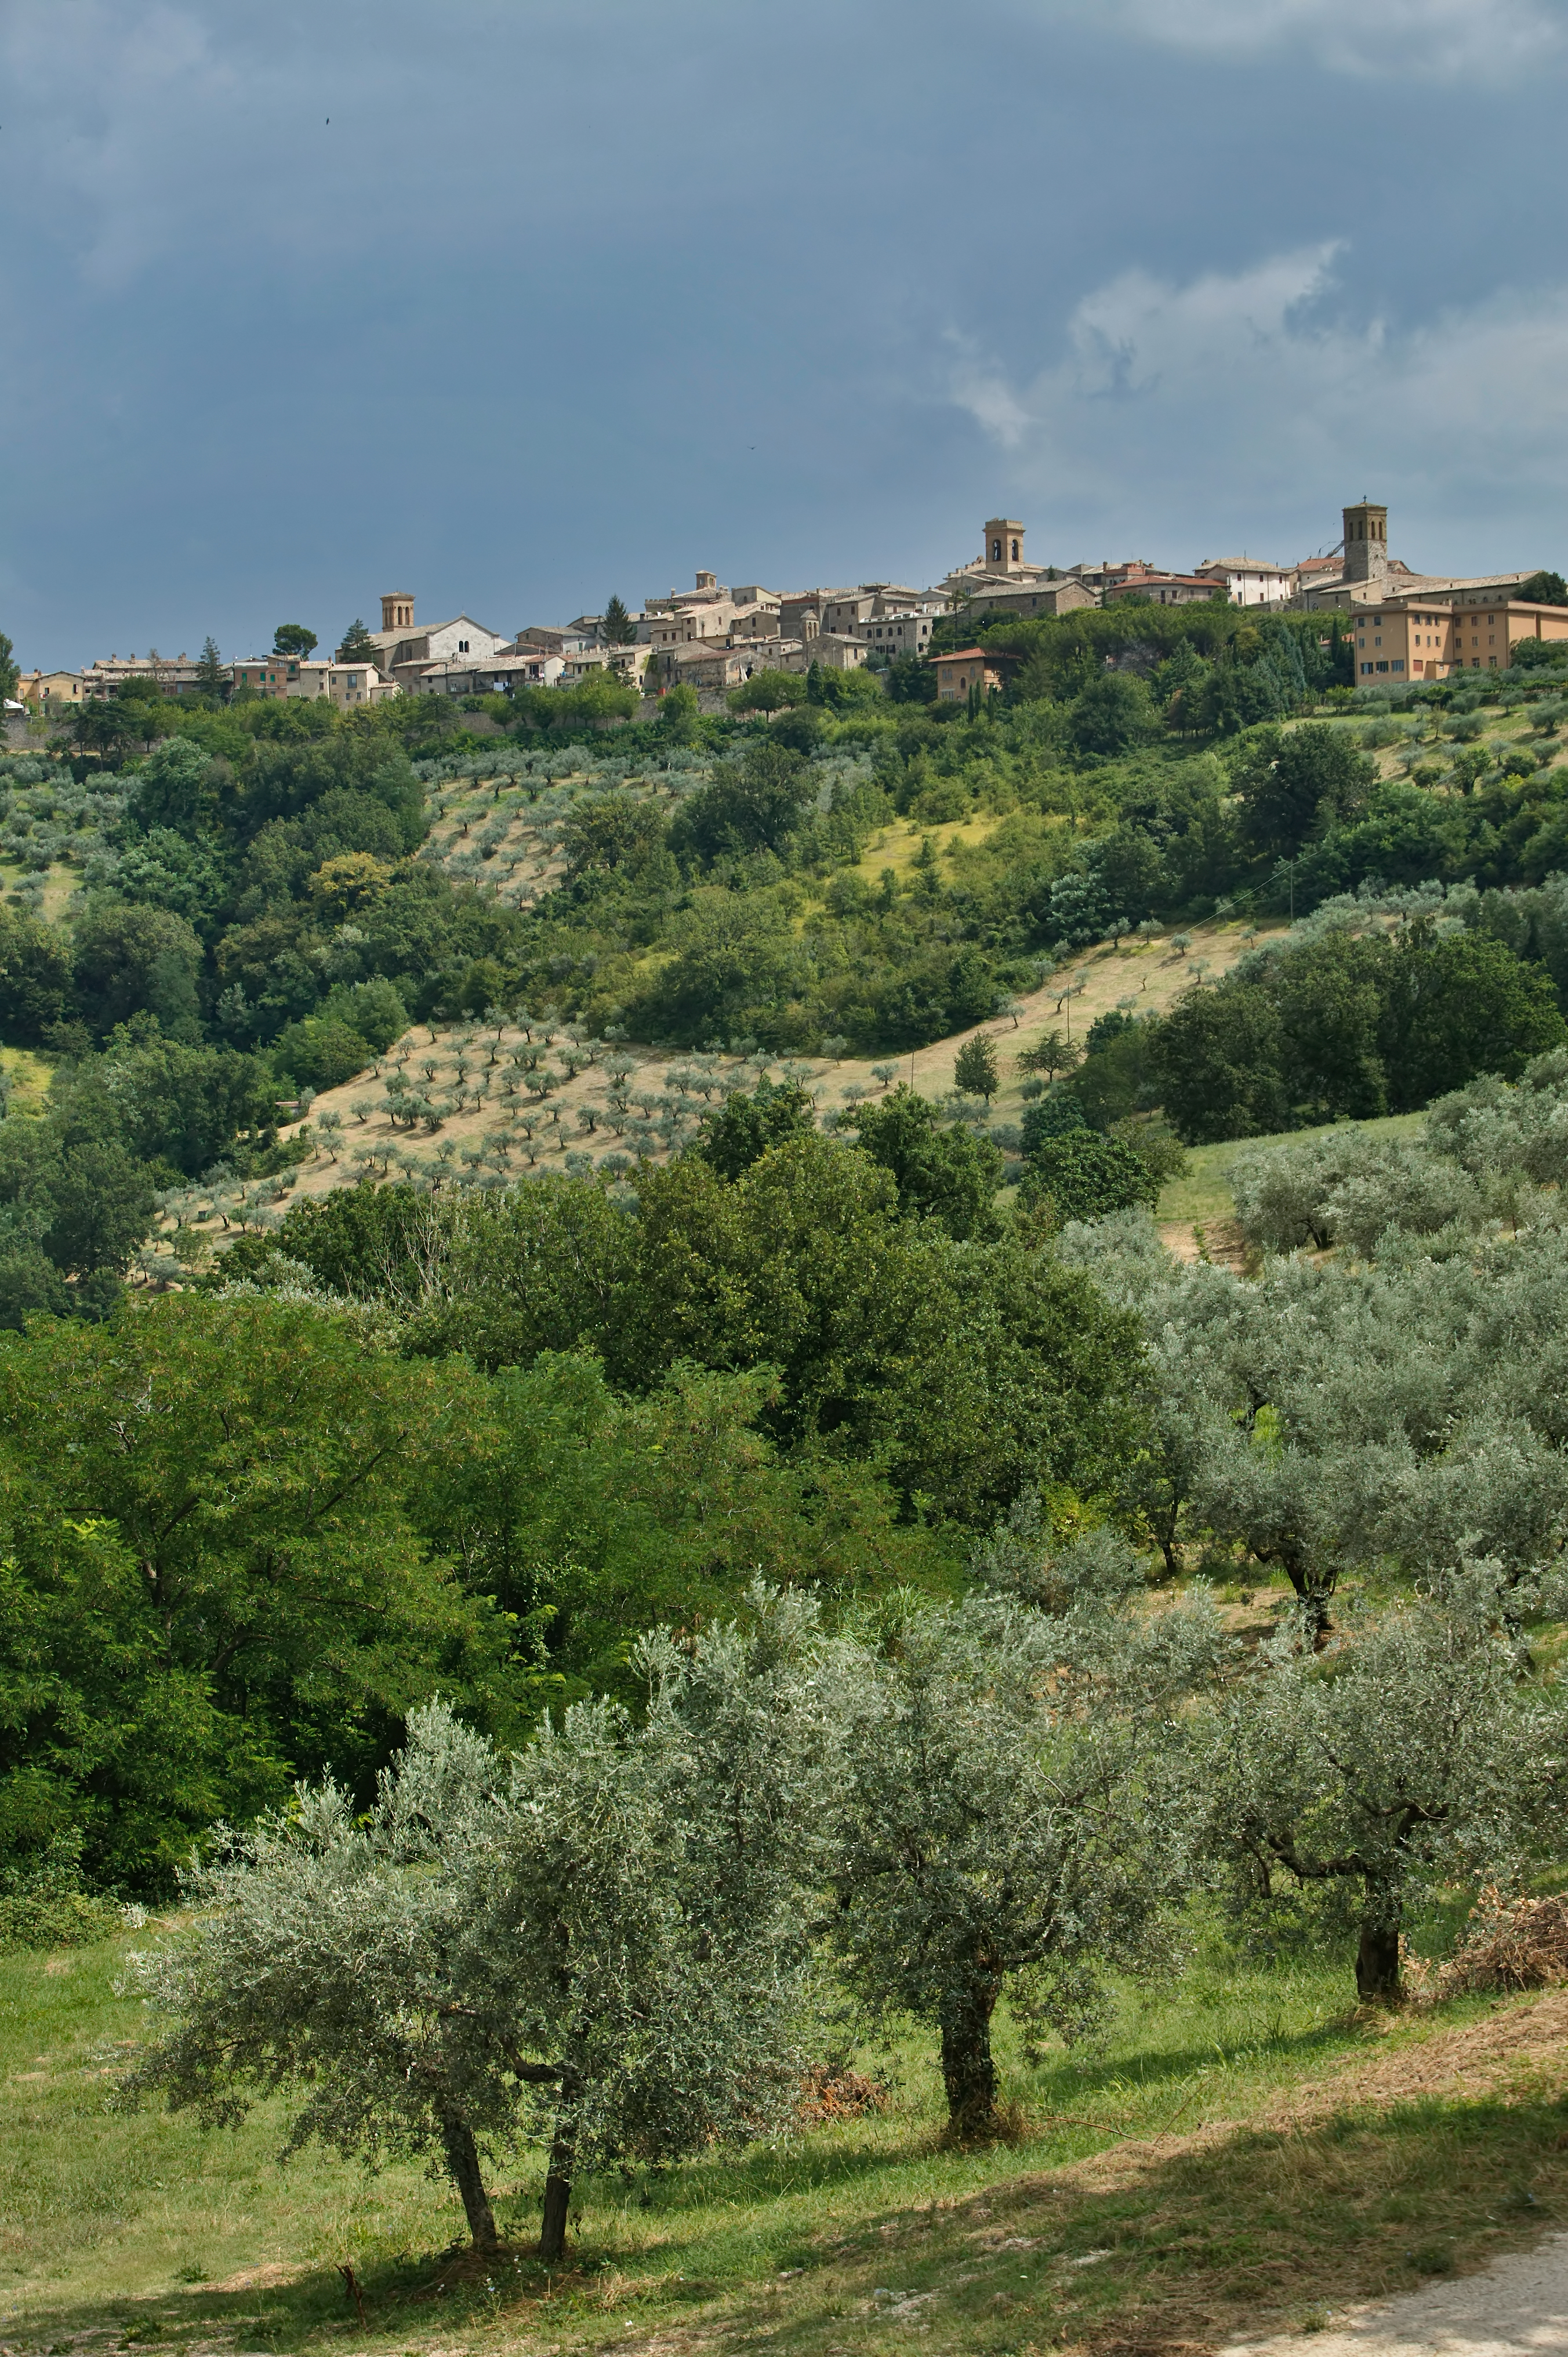 Montefalco: view of the small town and the surrounding coutryside.